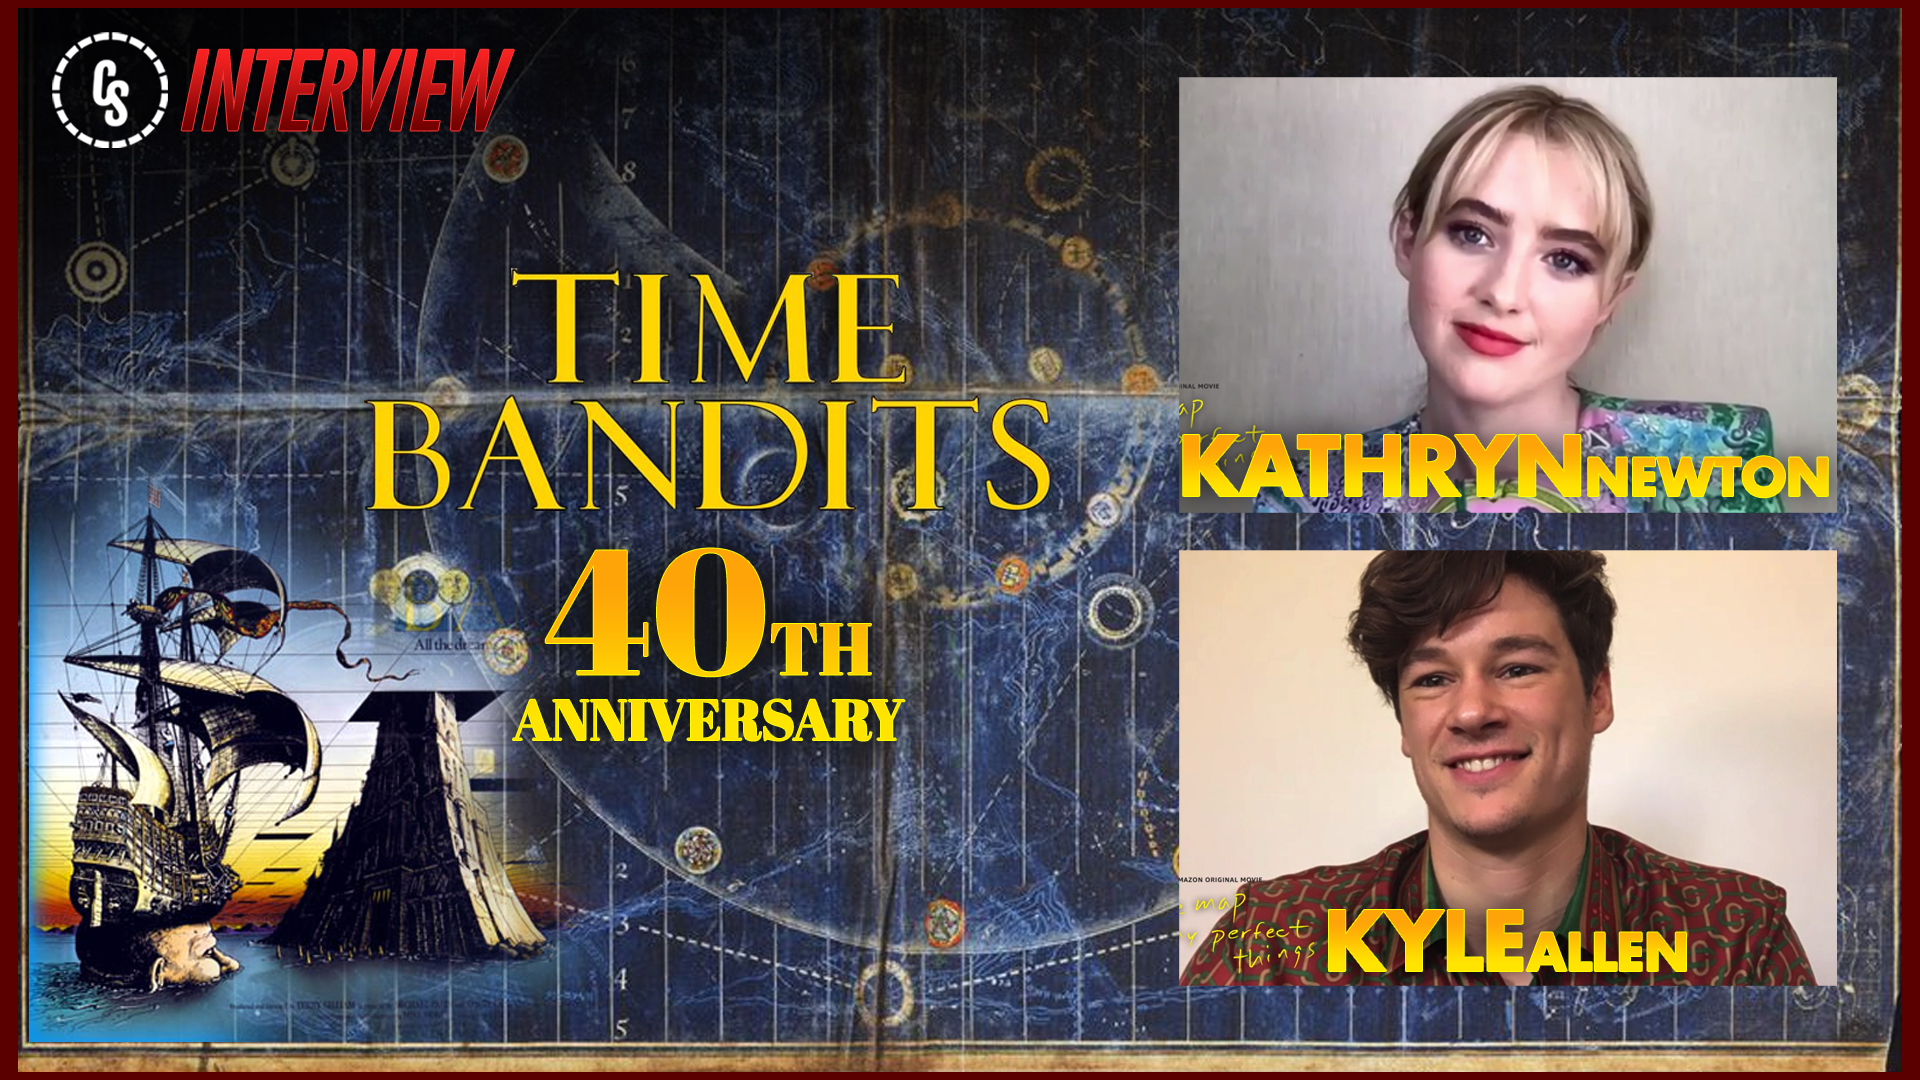 Exclusive: Kathryn Newton & Kyle Allen on Time Bandits 40th Anniversary